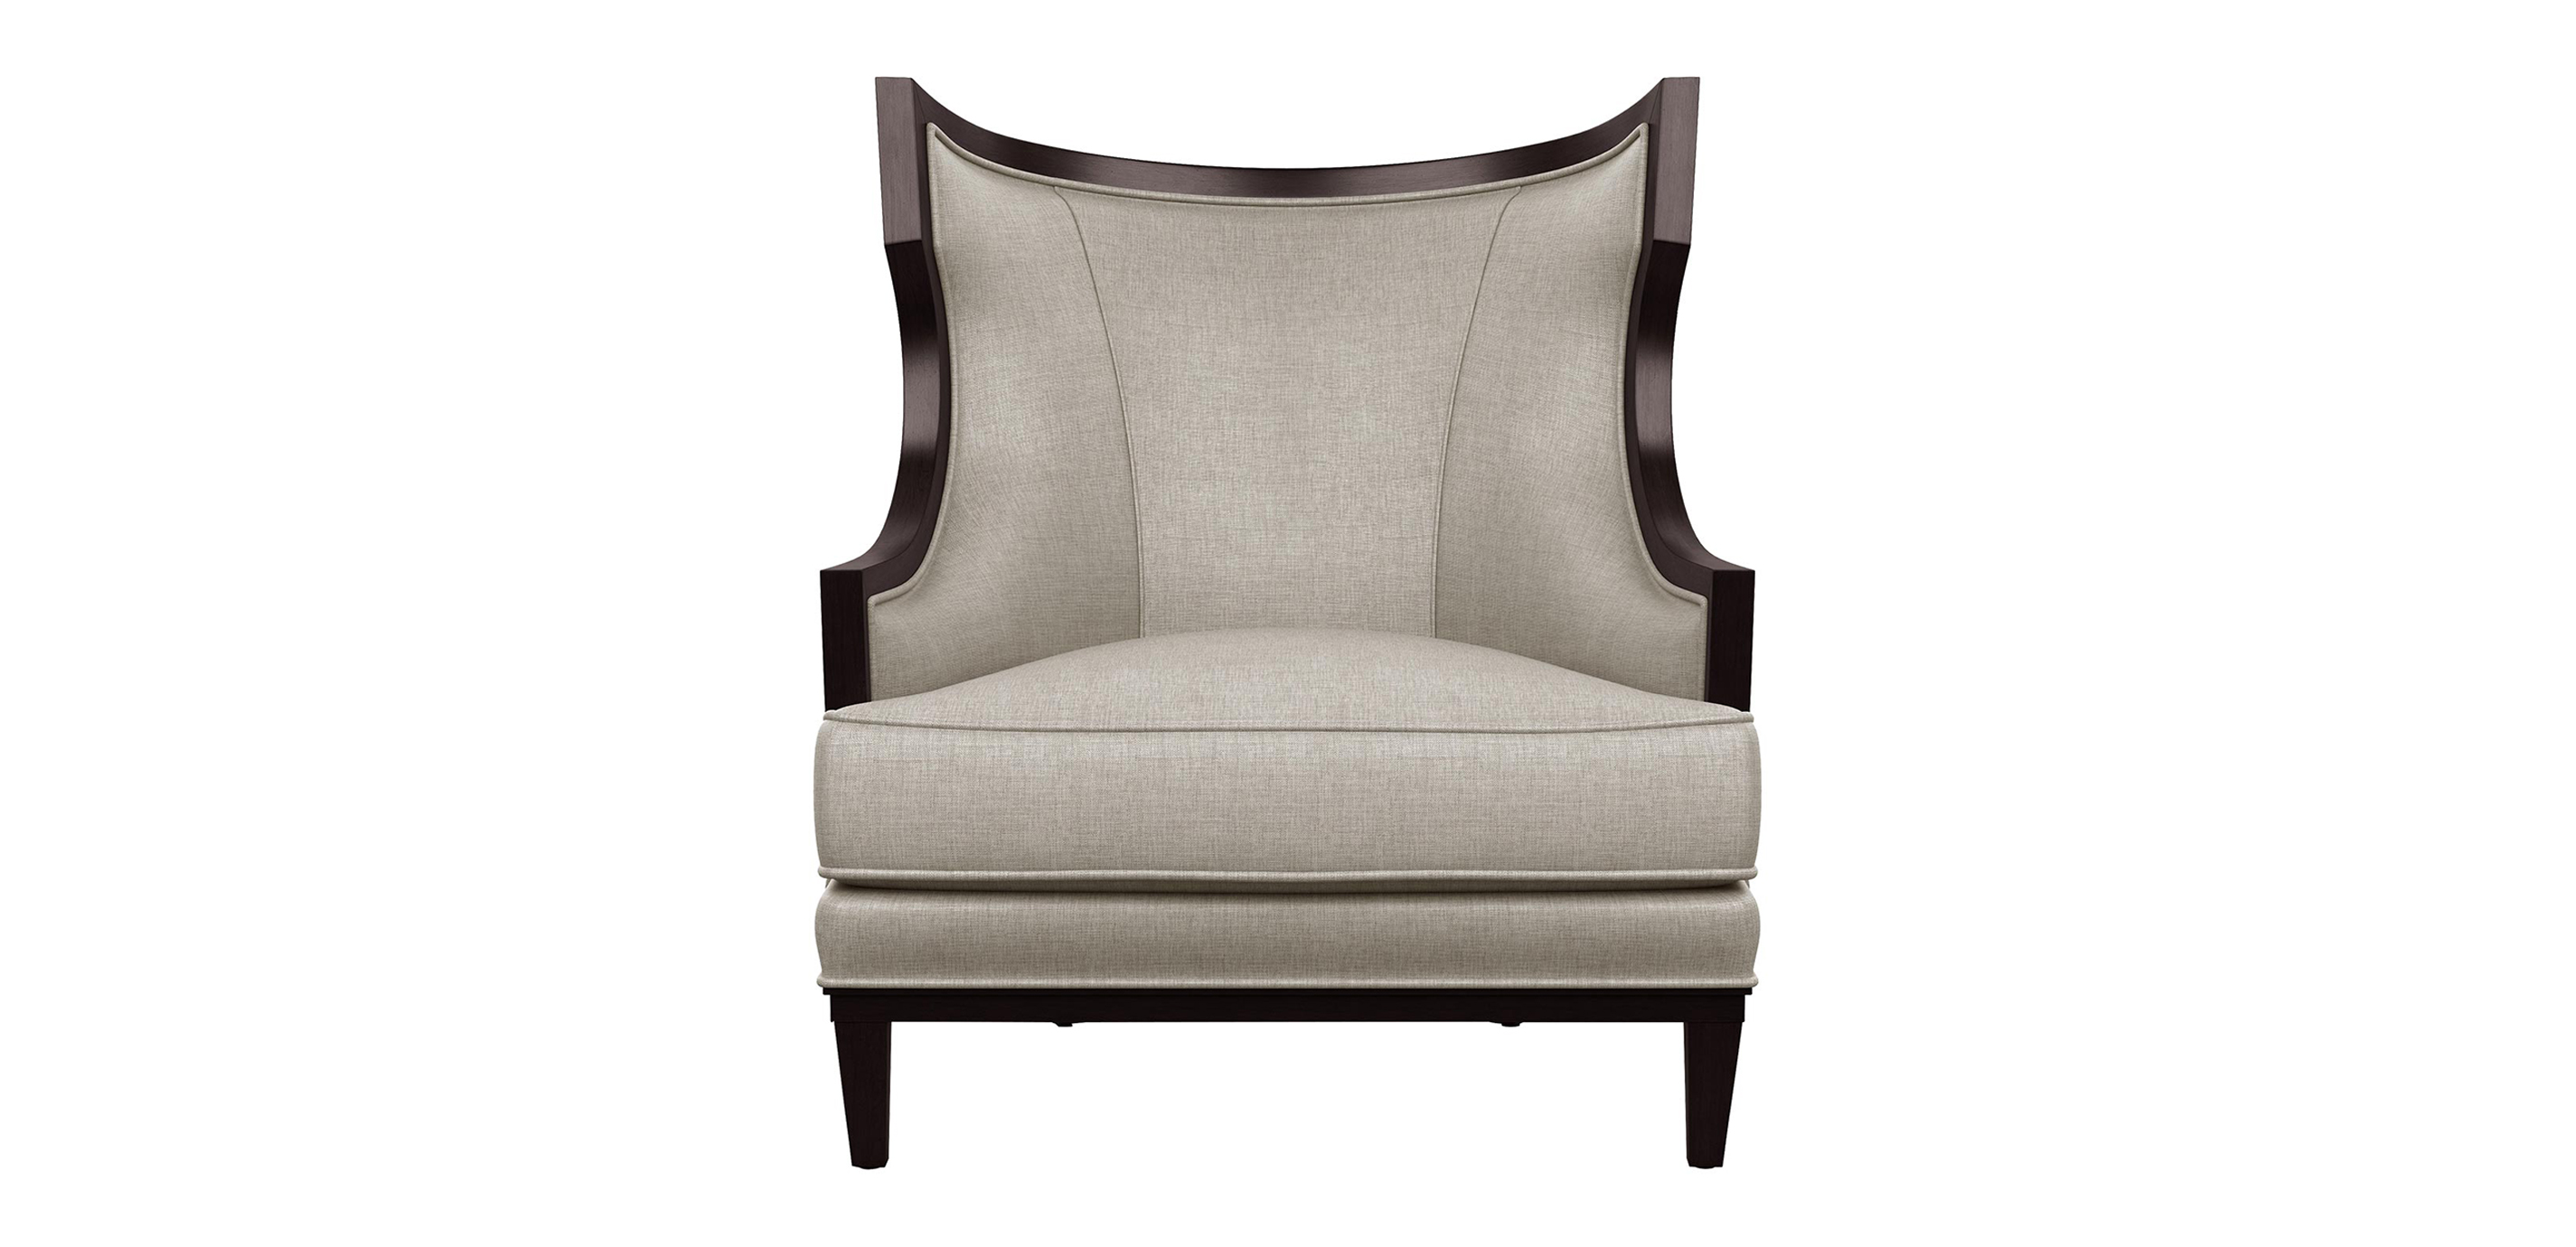 Ethan Allen Club Chairs Corrine Chair Chairs Chaises Ethan Allen